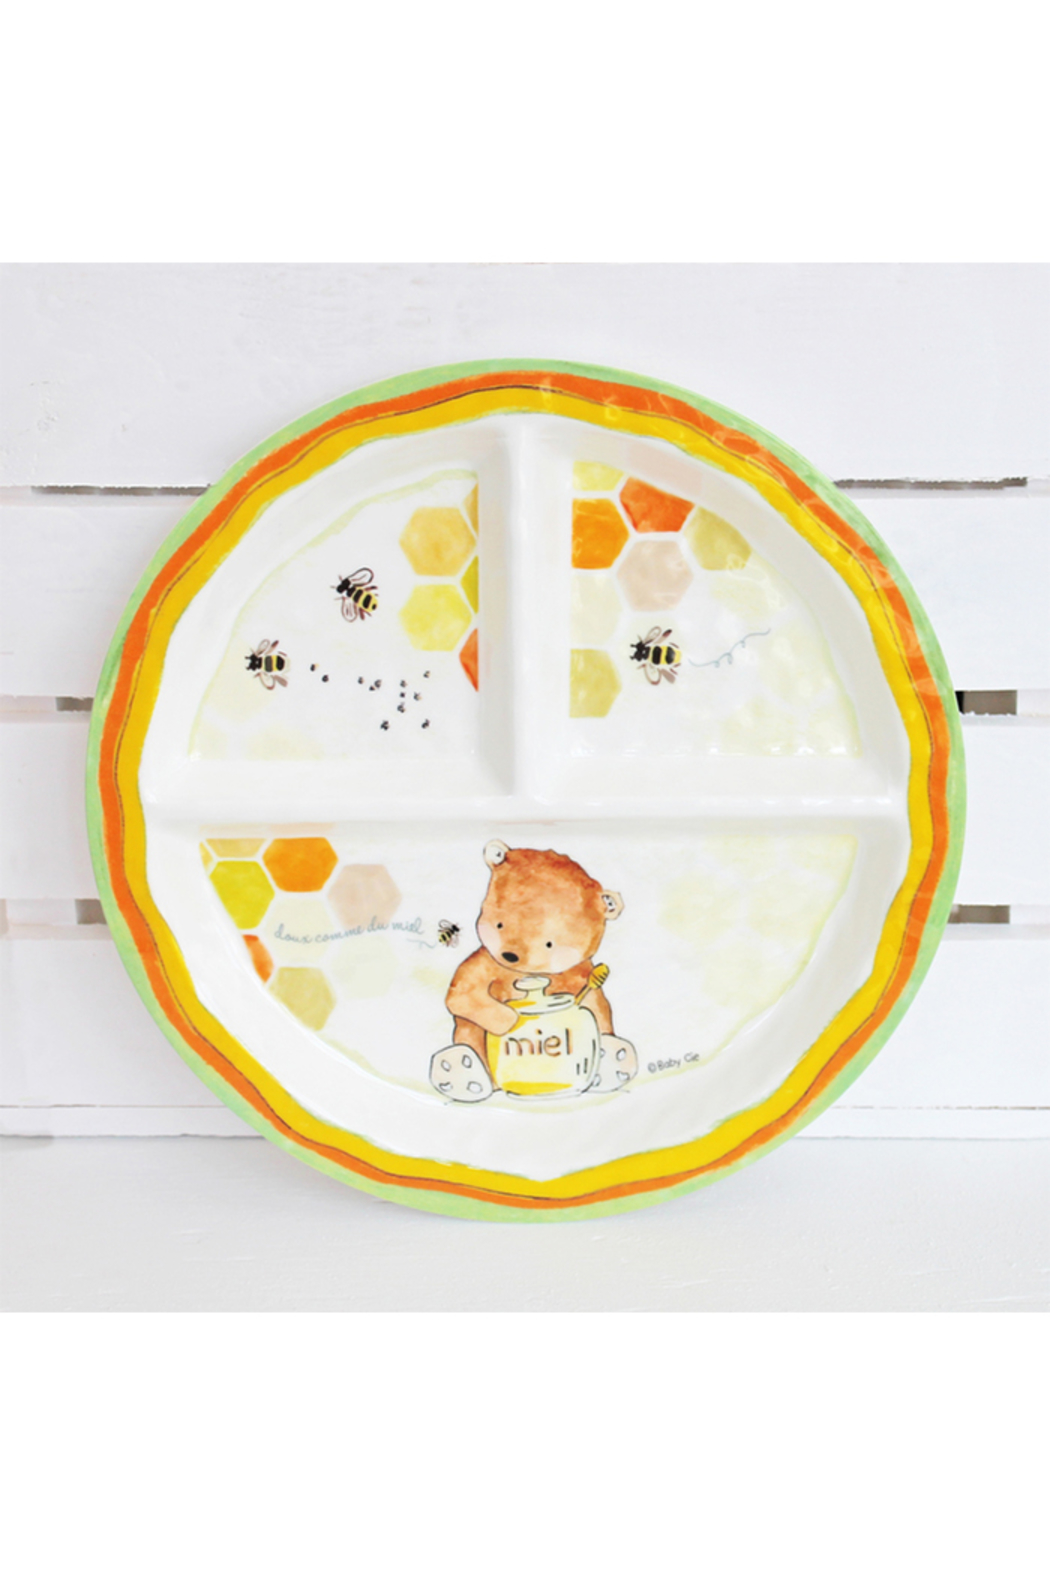 Baby Cie Section Plate - Sweet as Honey - Main Image